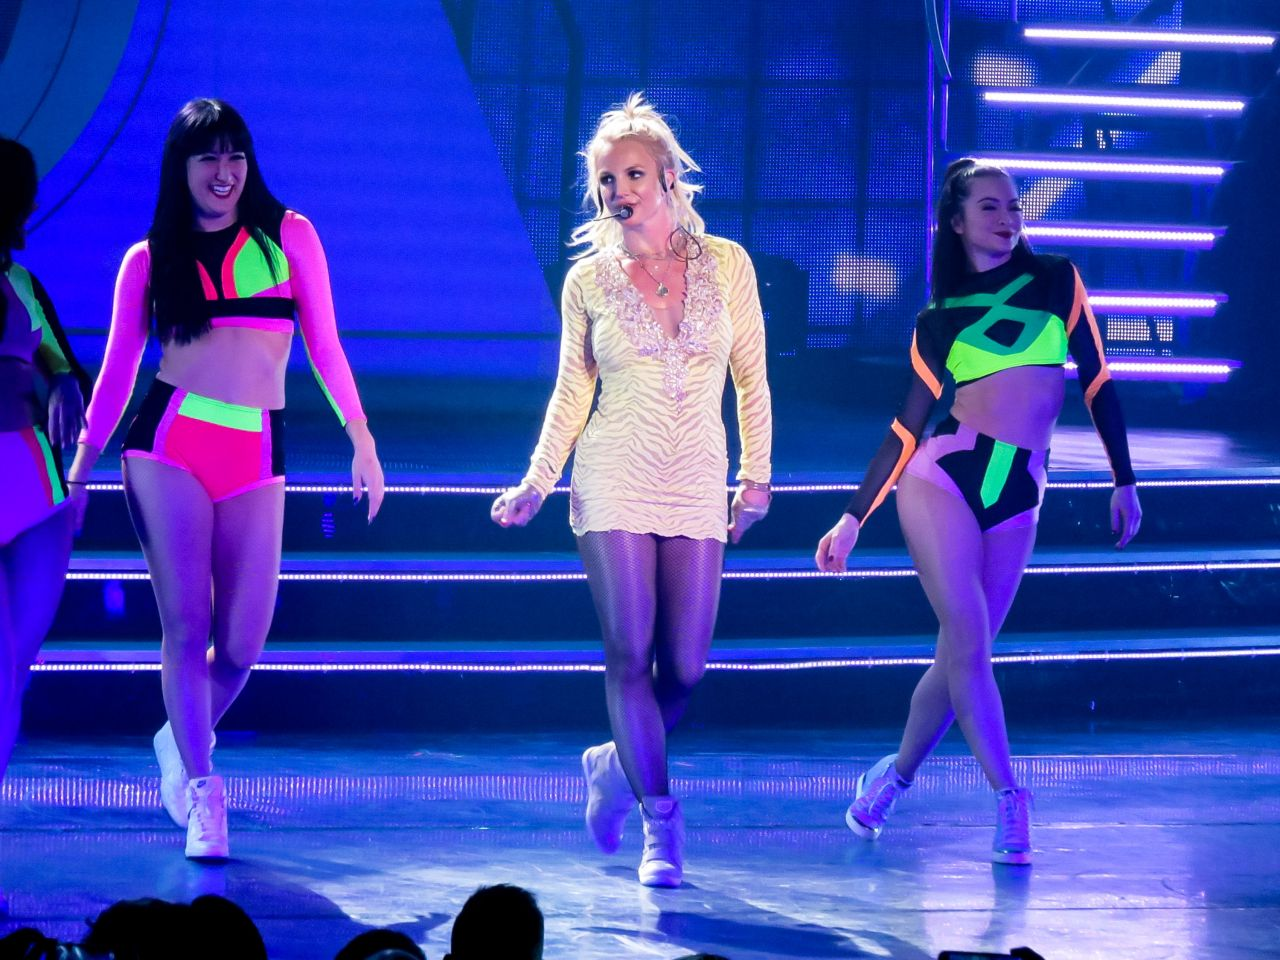 Spears performs at planet hollywood resort and casino in las britney spears performs at planet hollywood resort and casino in las vegas january 2015 kristyandbryce Choice Image